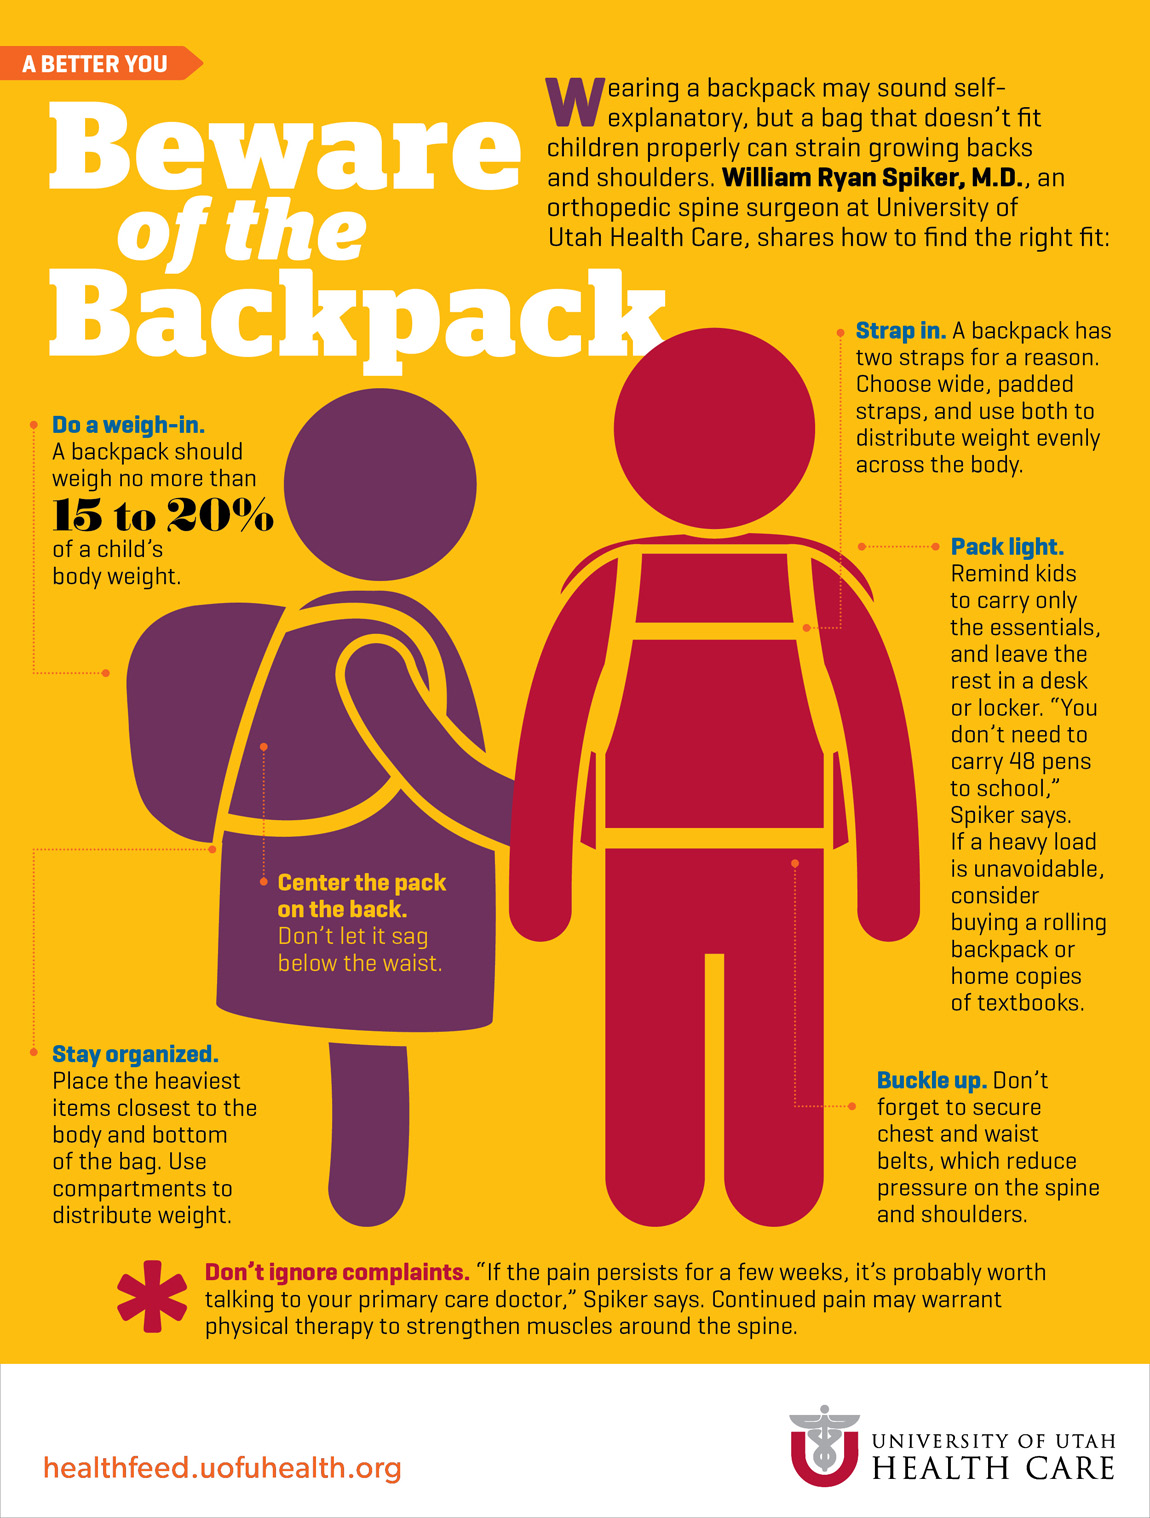 Does your kid know how to wear a backpack correctly? Check out the tips on this infographic.